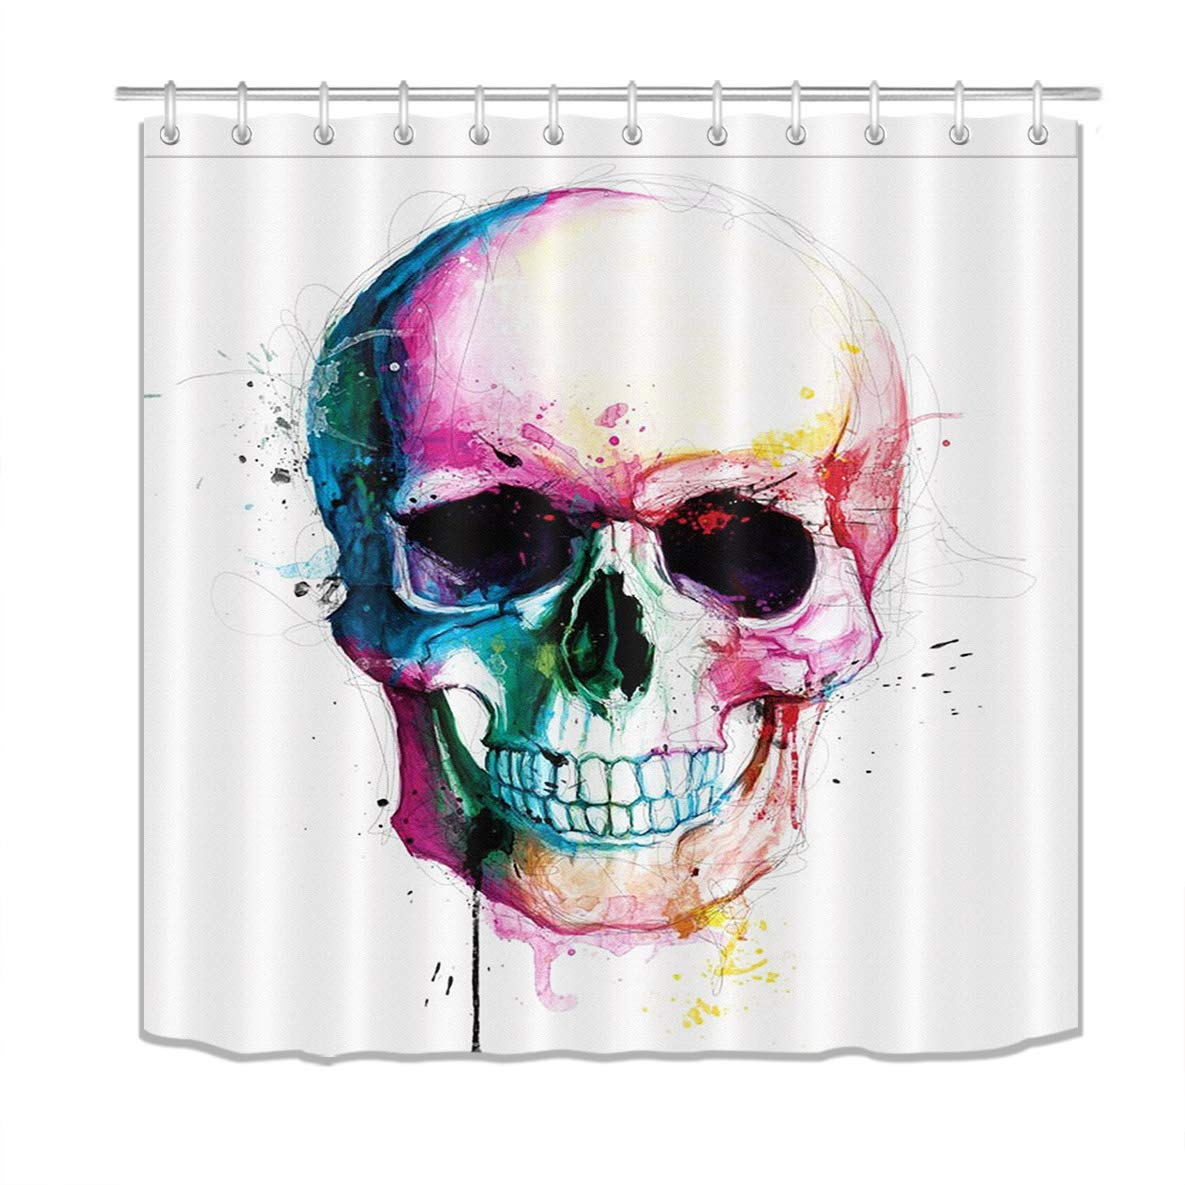 LB Halloween Skull Shower Curtains for Bathroom Skeleton Shower Curtain with Hooks Hallowmas Bathroom Decorations 72x78 inch Extra Long Polyester Fabric Waterproof